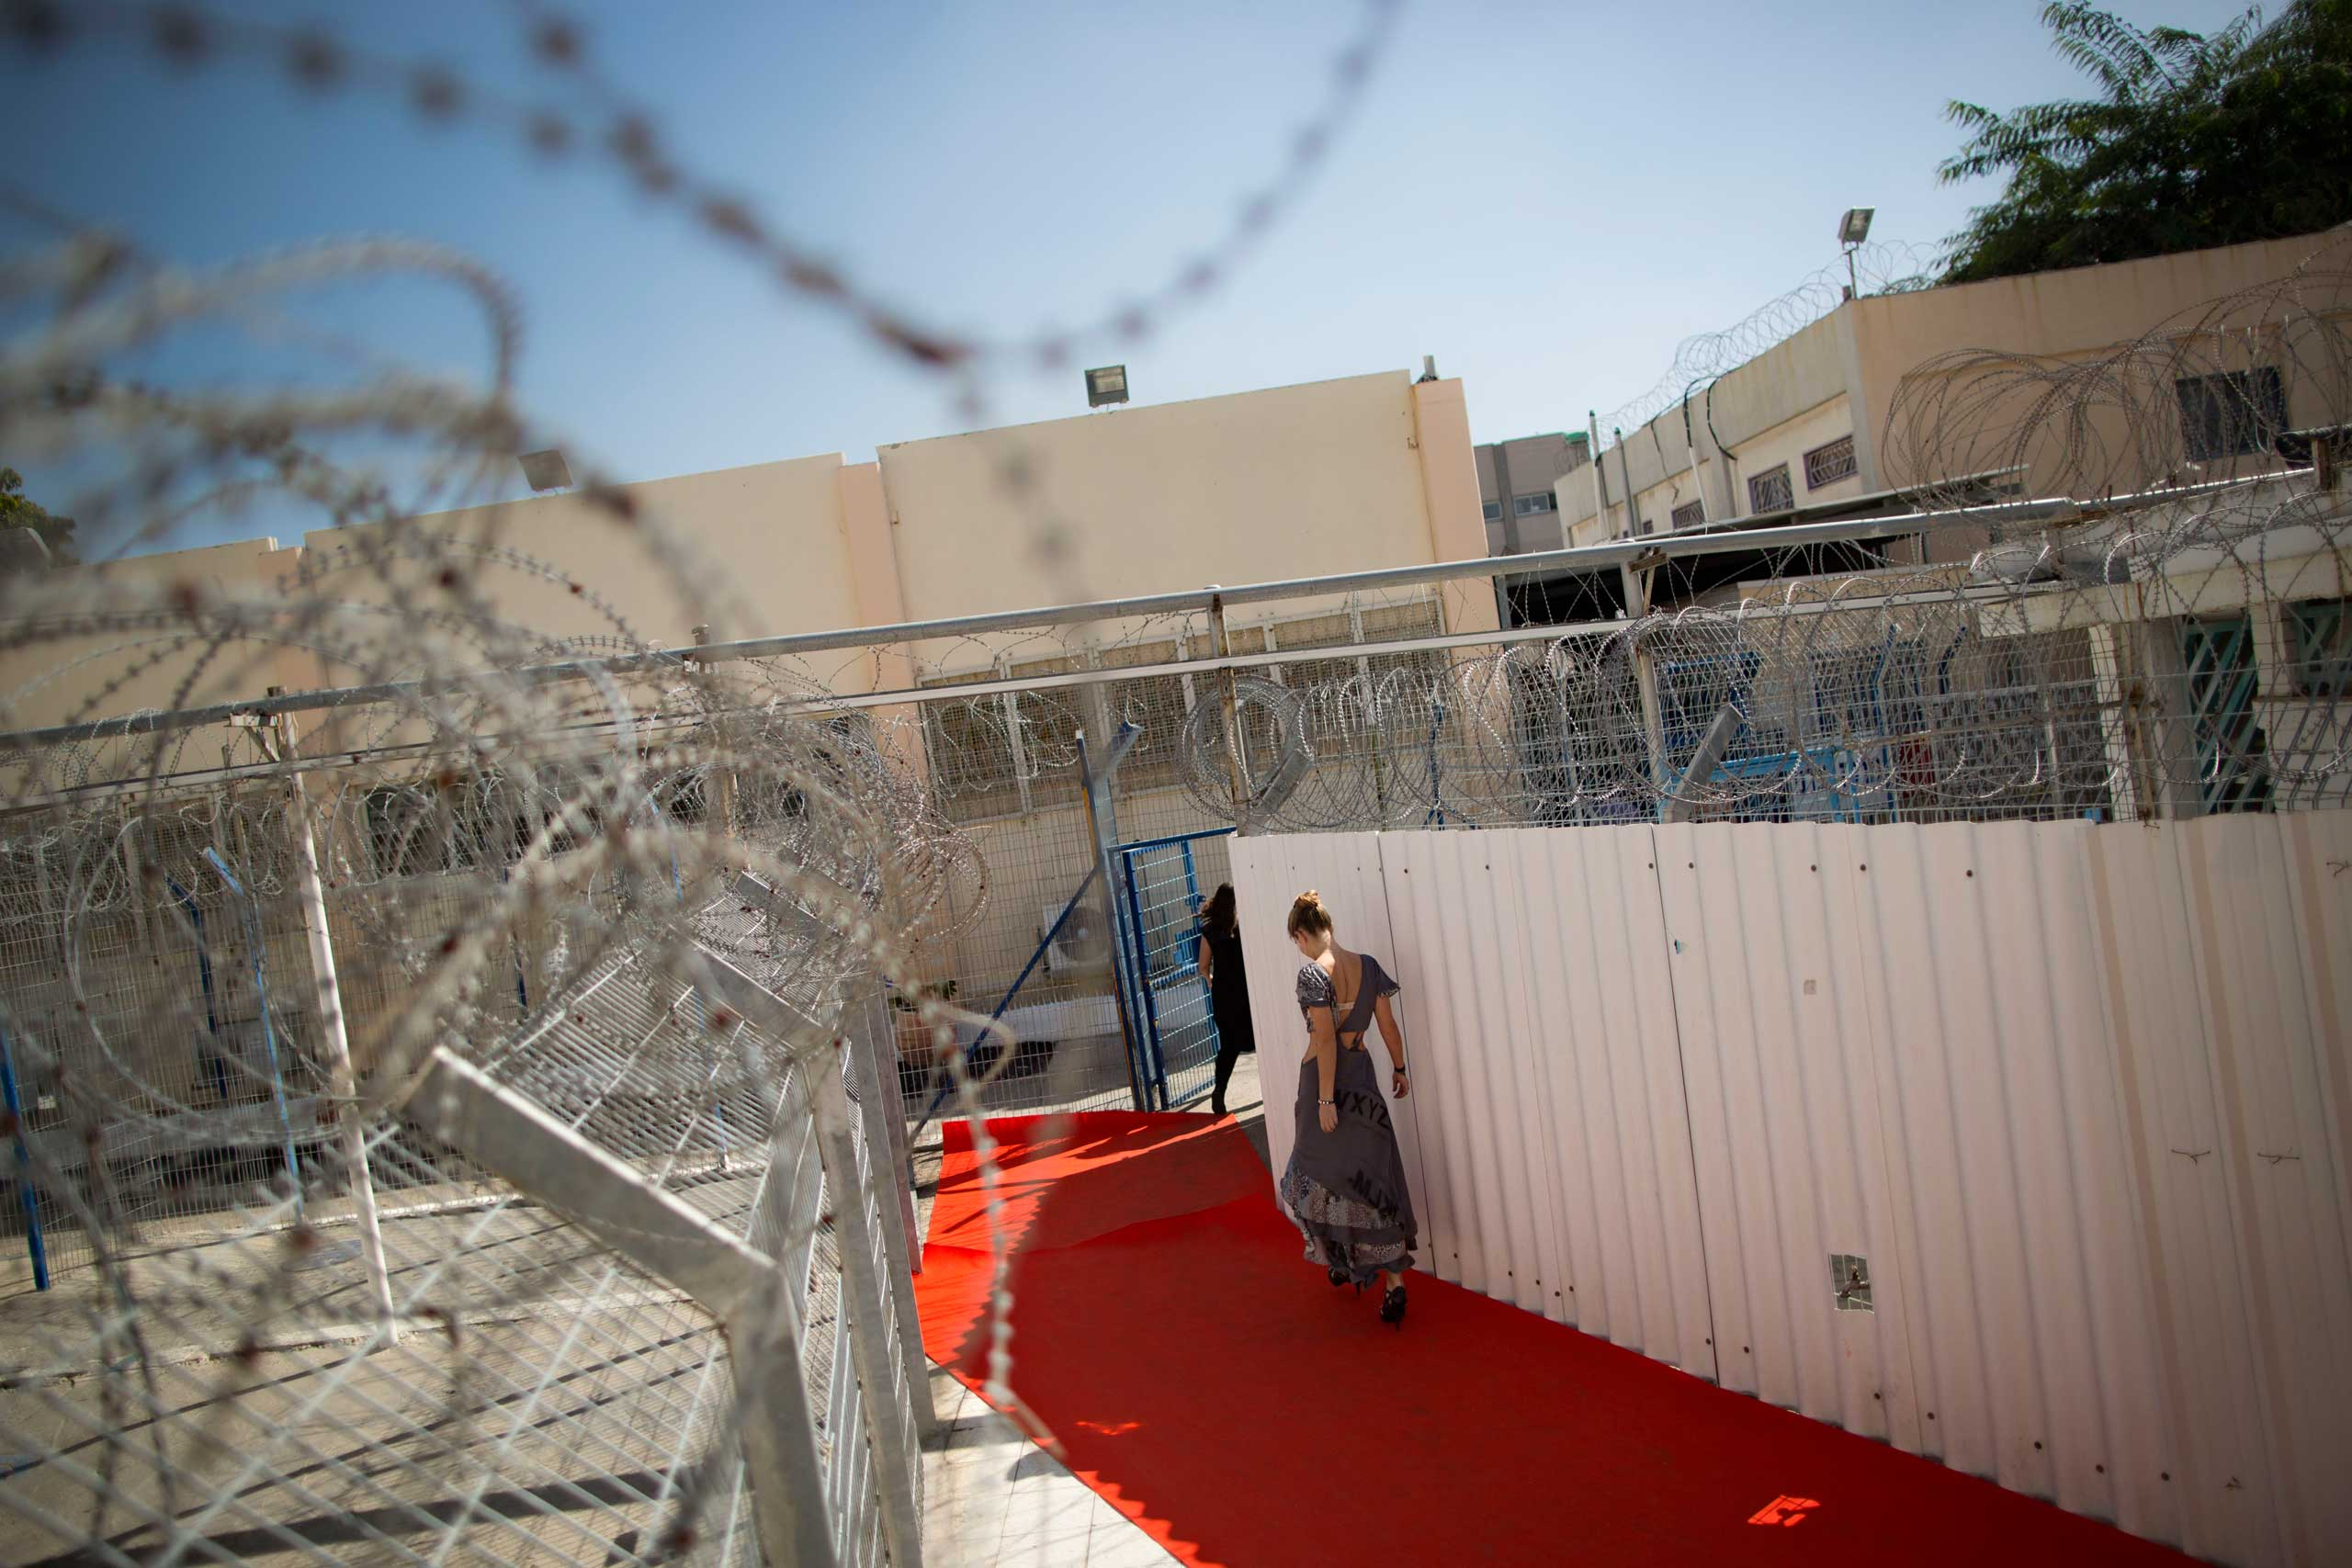 Oct. 27, 2014. A model prepares to walk a runway before a fashion show in Neve Tirza prison in Ramle, central Israel.  Neve Tirza, Israel's only women prison, hosted its first fashion show where models strutted on a red catwalk, showcasing clothes designed and made by inmates.